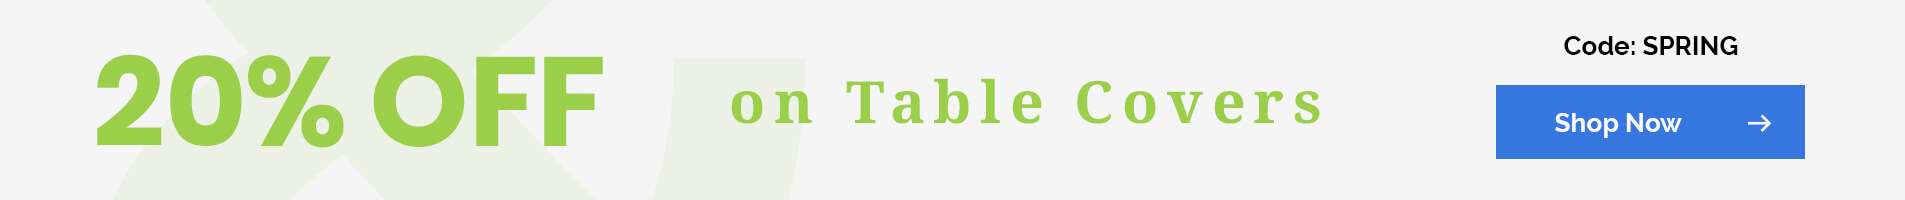 20% Off on Table Covers